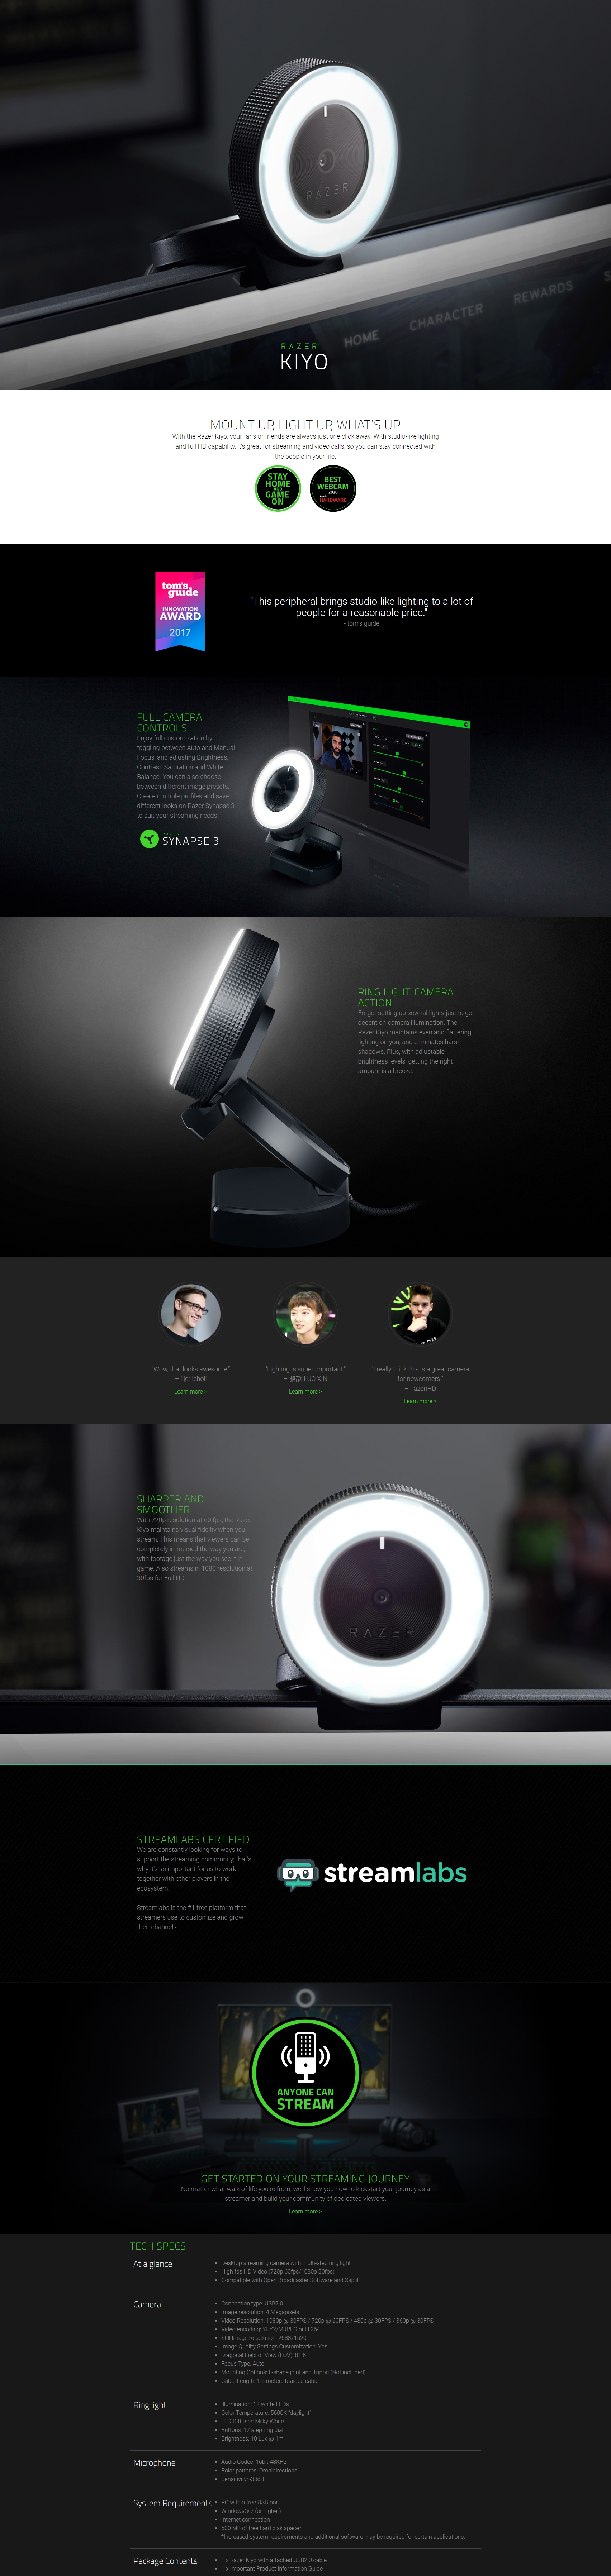 A large marketing image providing additional information about the product Razer Kiyo Desktop Streaming Camera - Additional alt info not provided